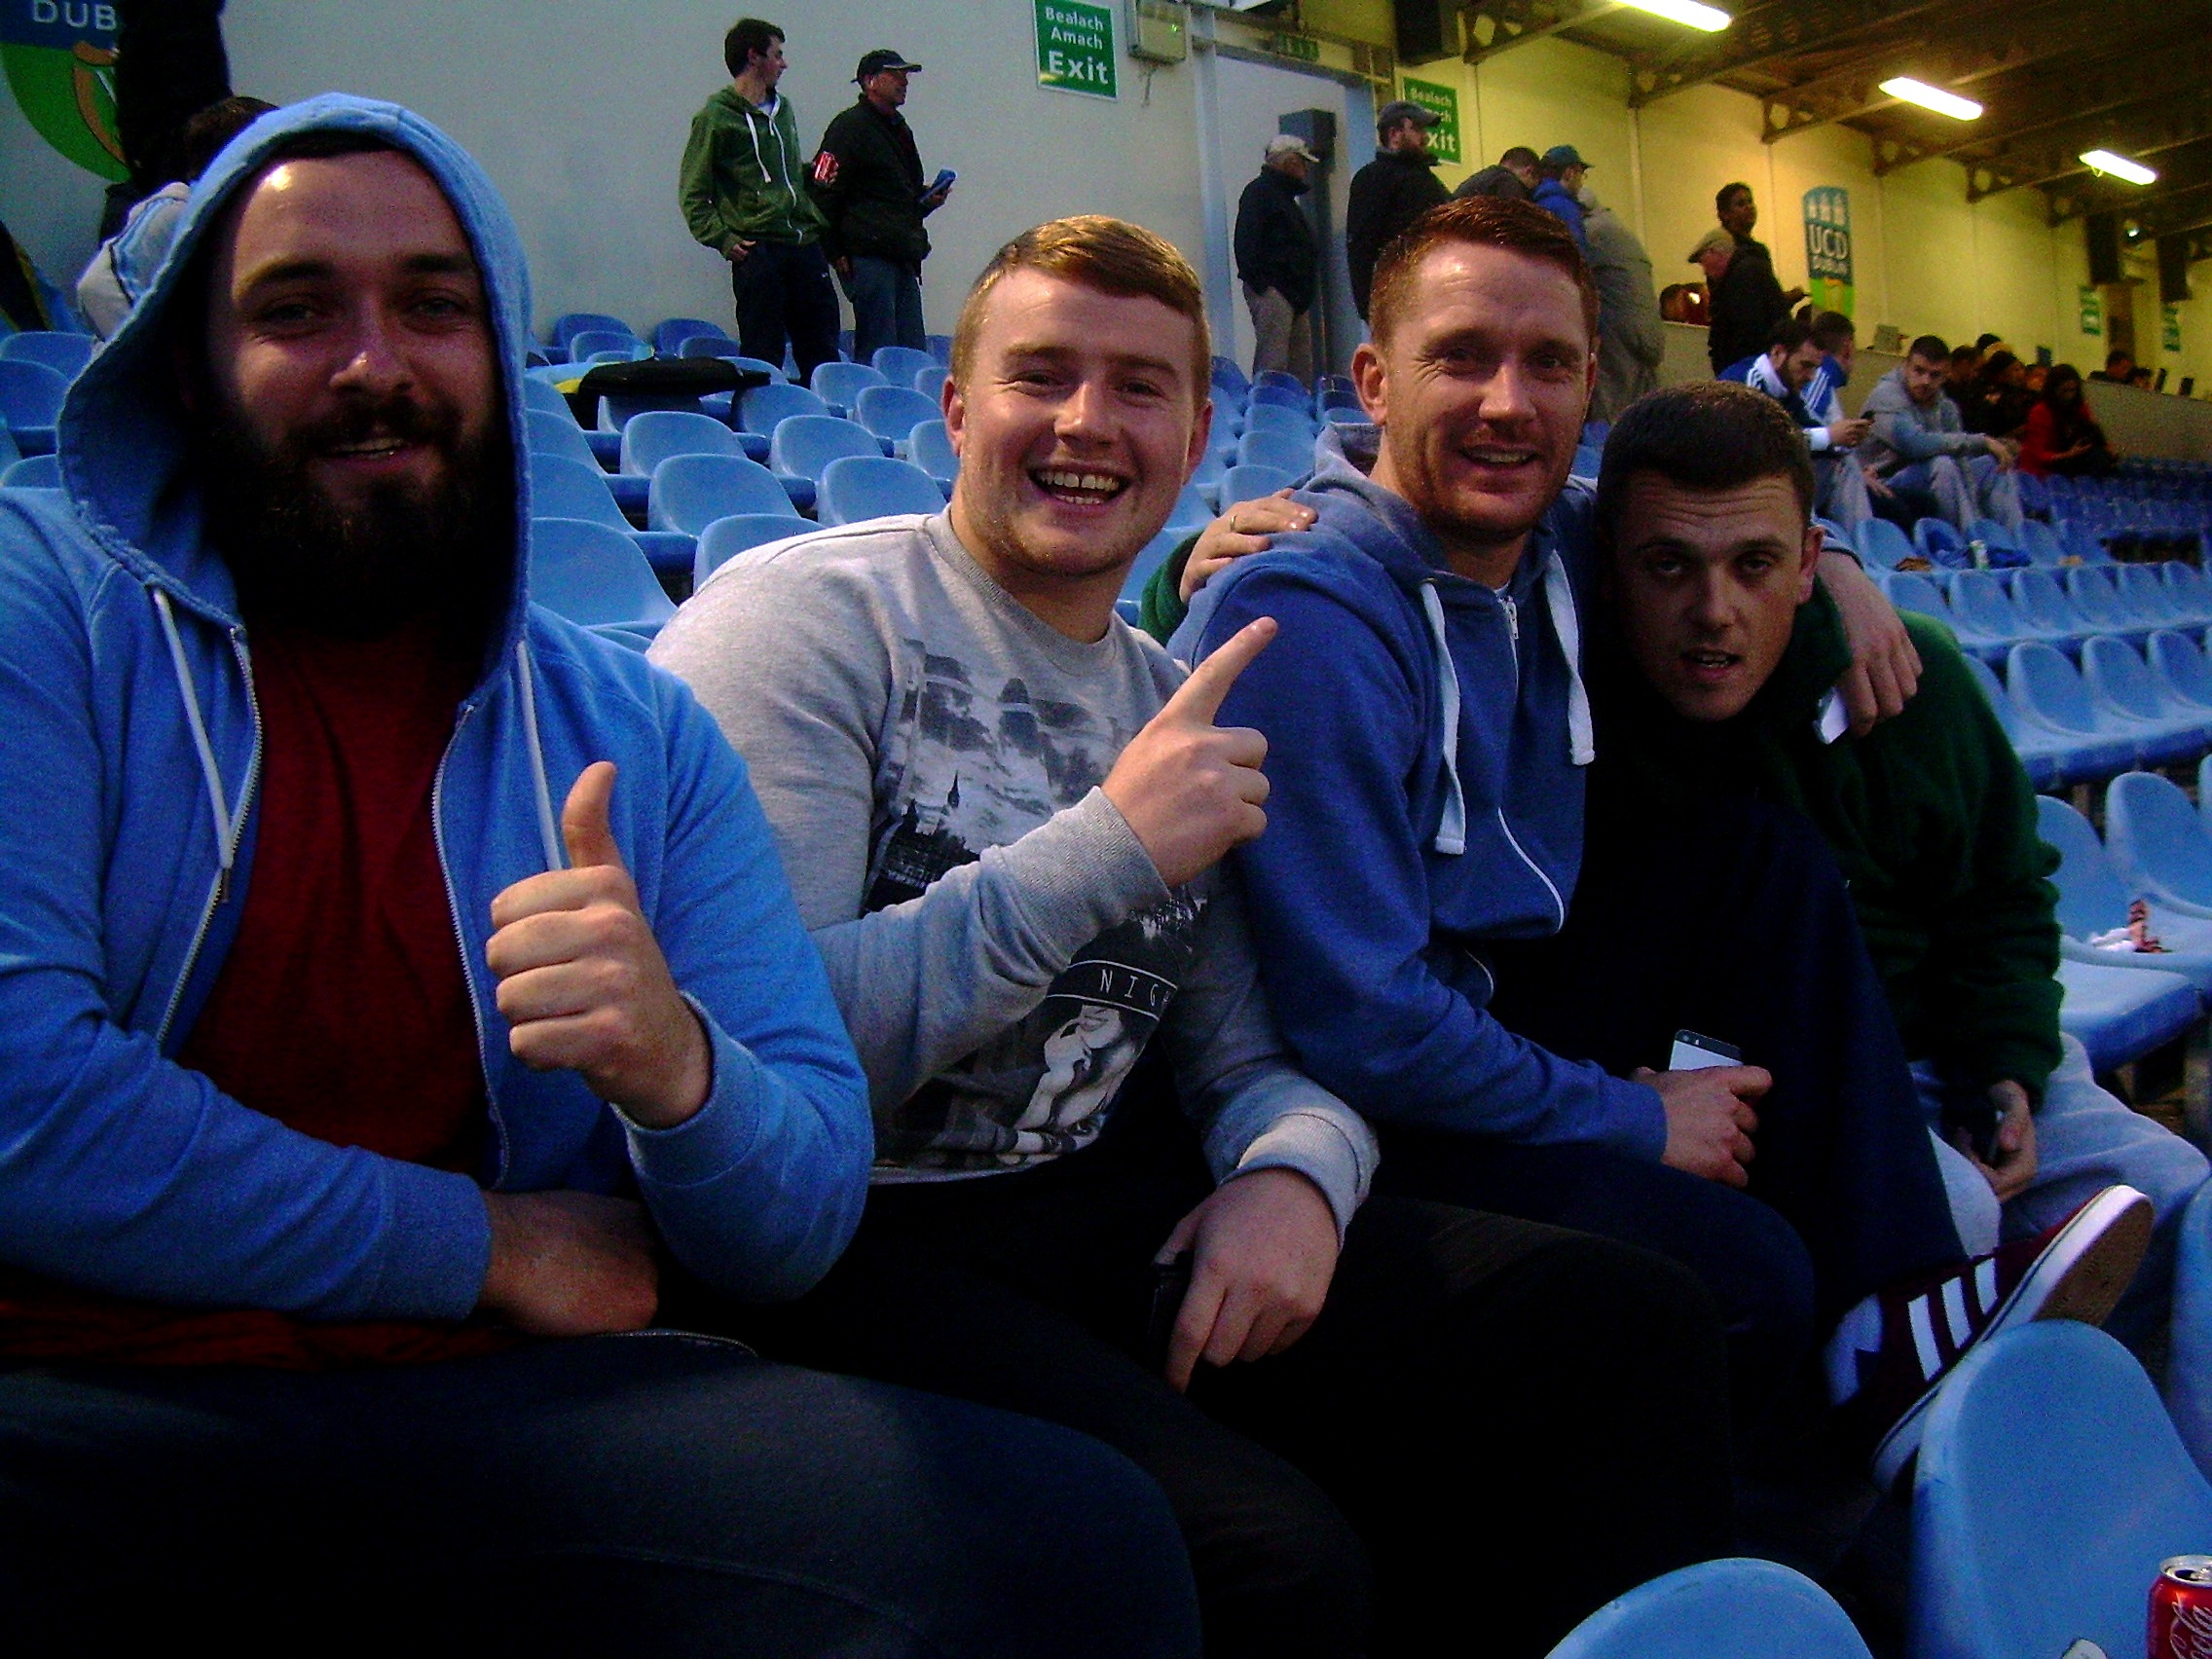 UCD Fans at Galway FAI 2014.JP